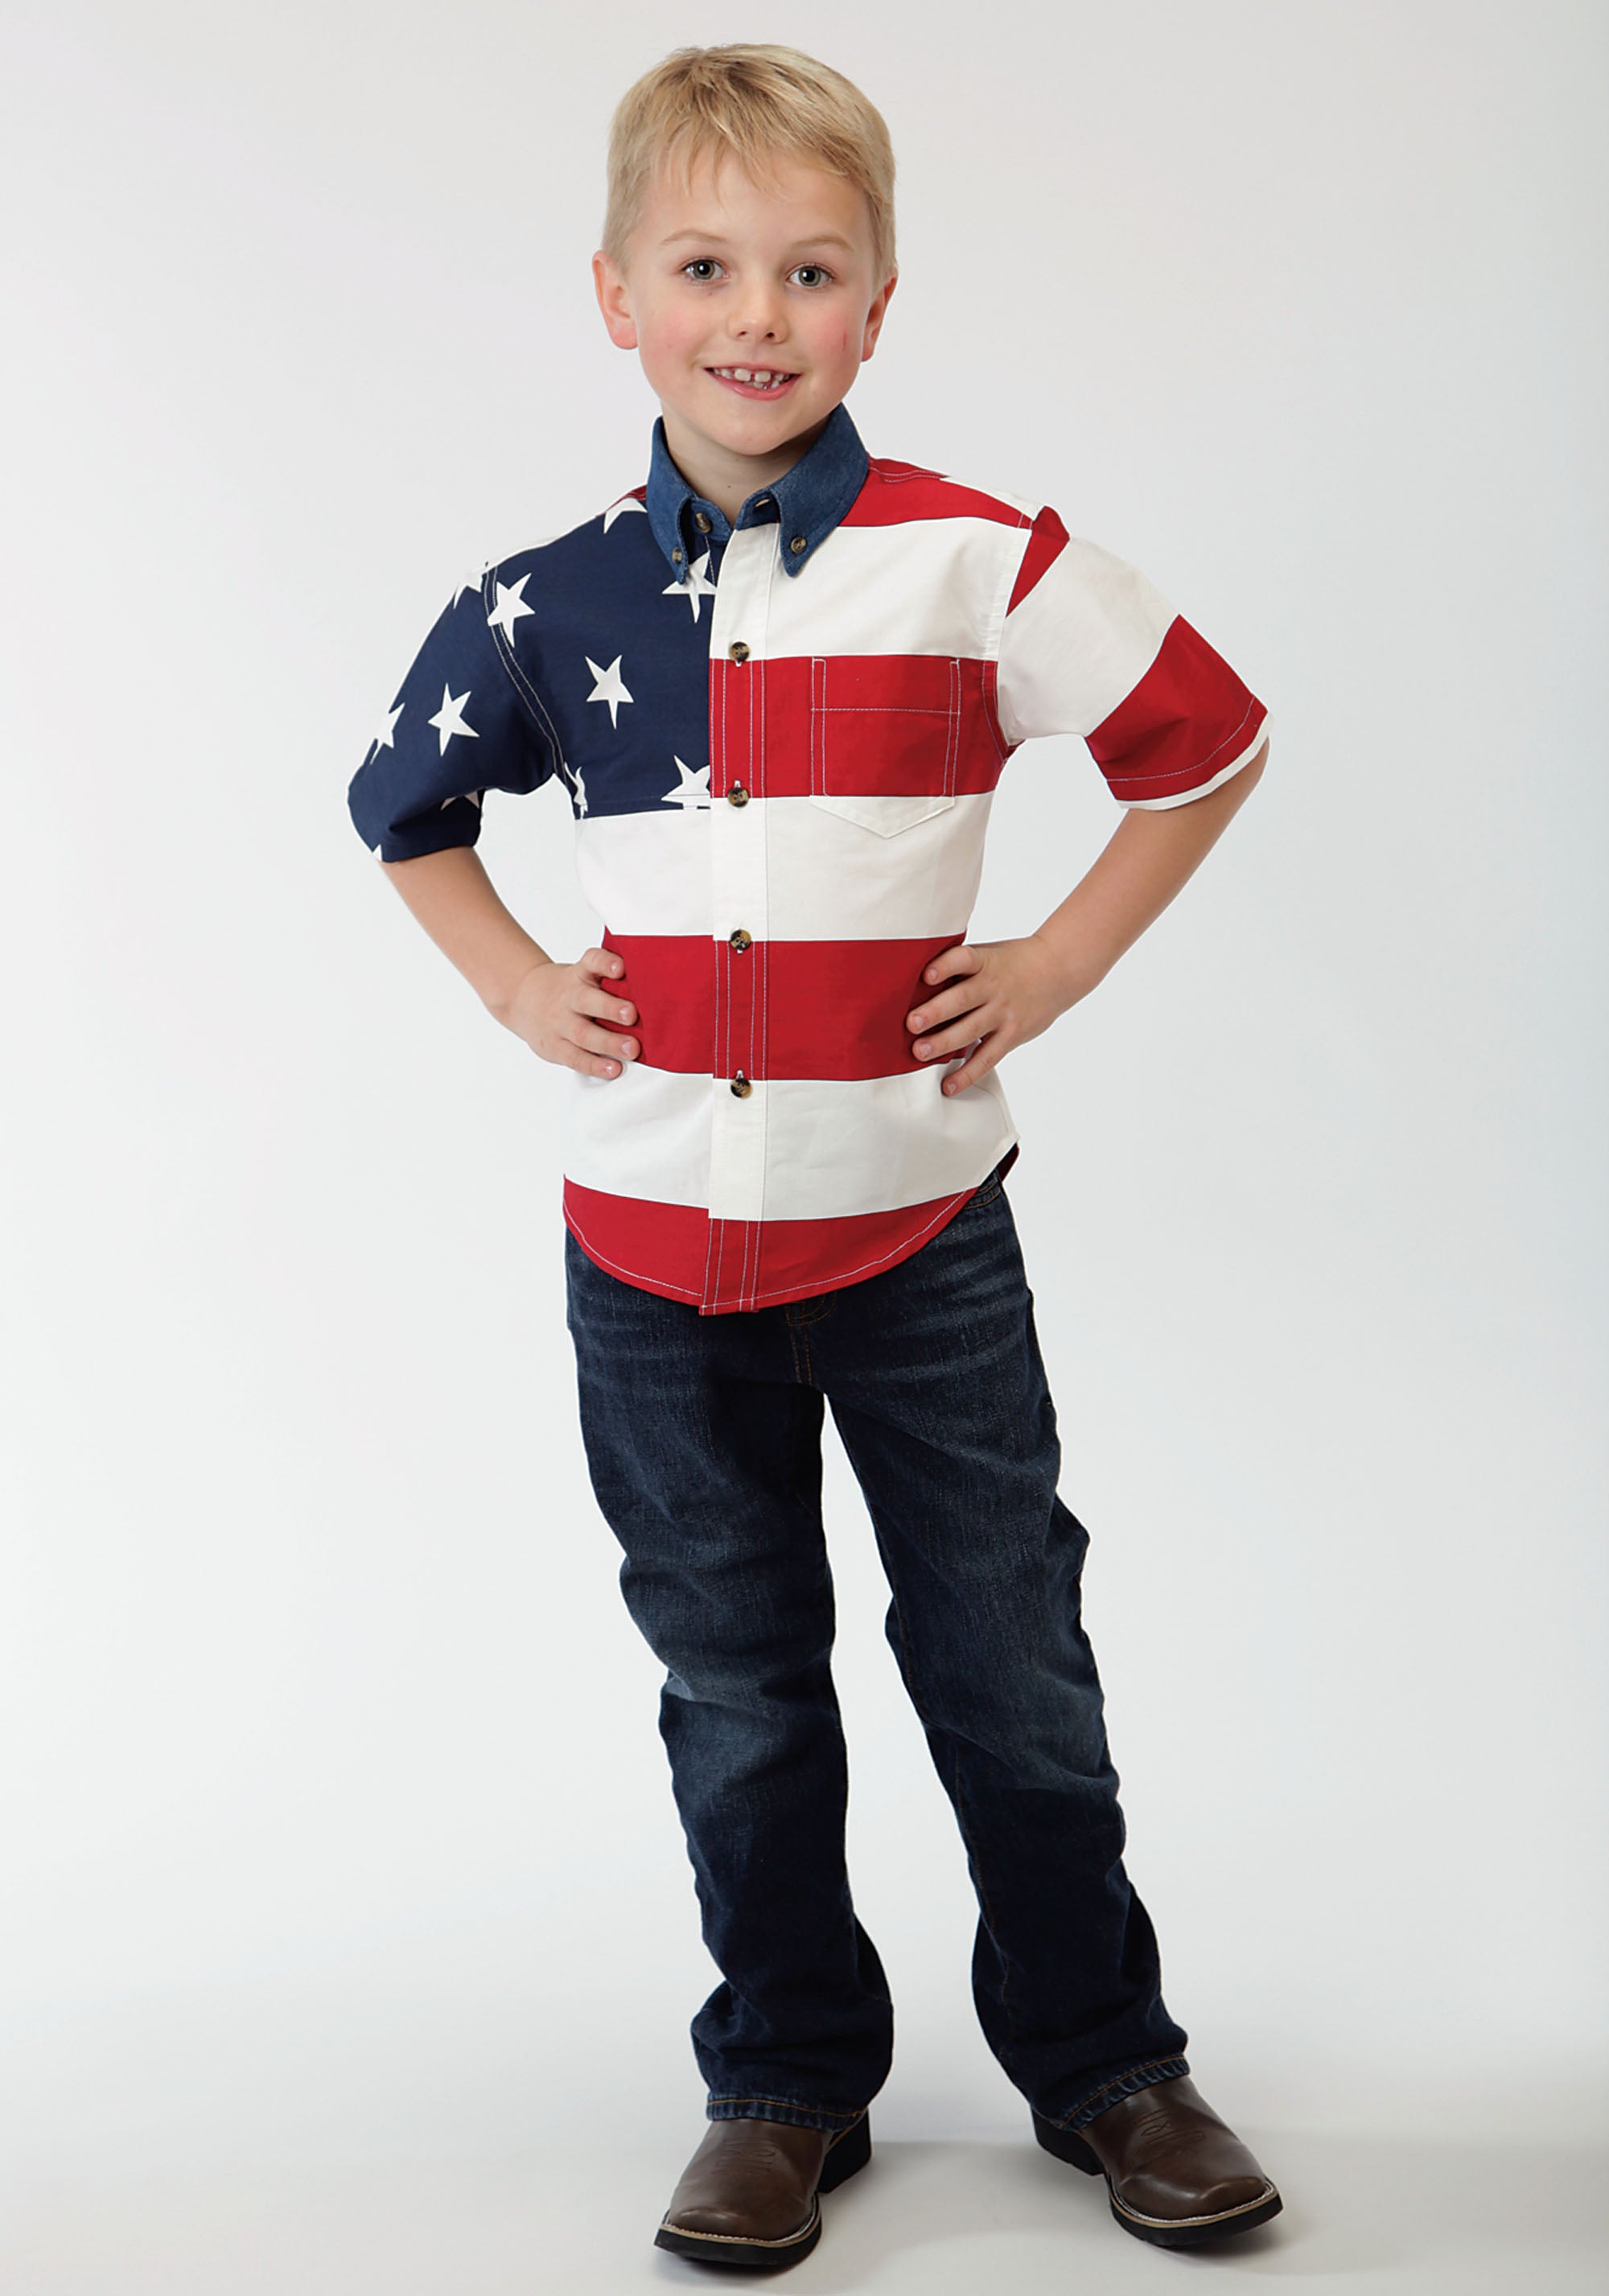 ROPER BOYS WHITE STARS & STRIPES PIECED AMERICAN FLAG PATRIOTIC COLLECTION SHORT SLEEVE SHIRT